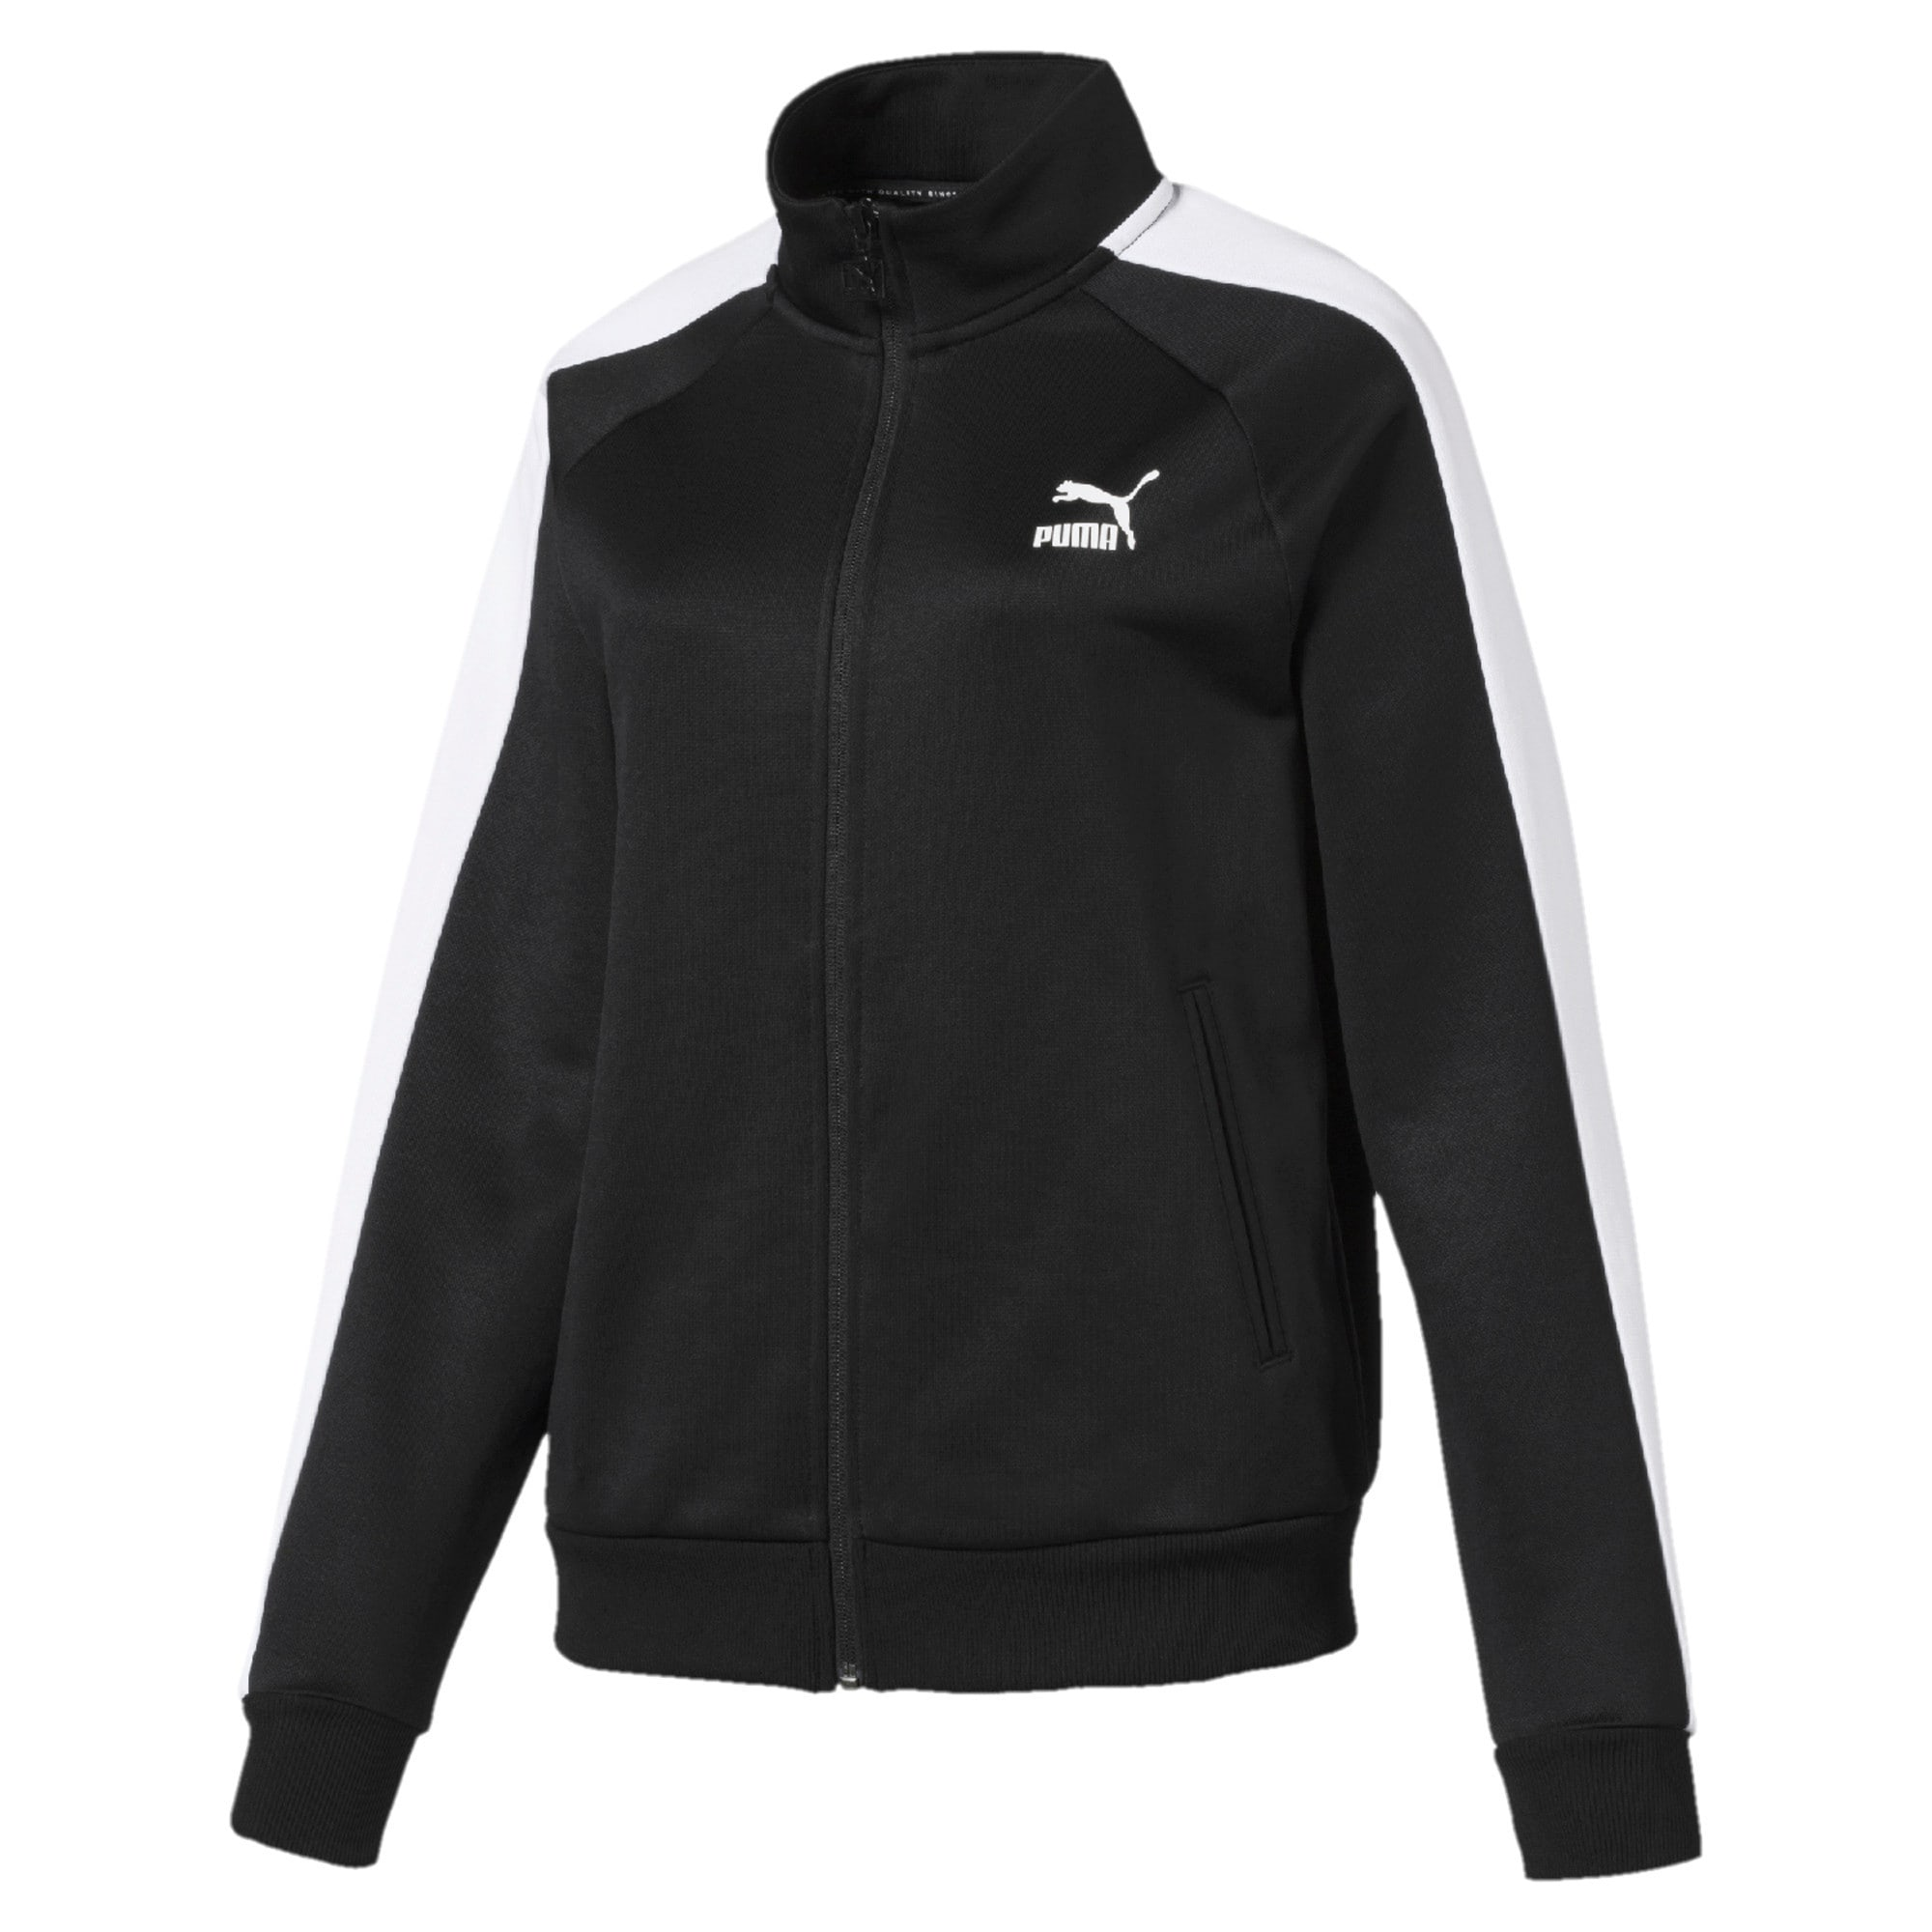 Thumbnail 4 of Classics T7 PT trainingsjack voor dames, Puma Black-1, medium